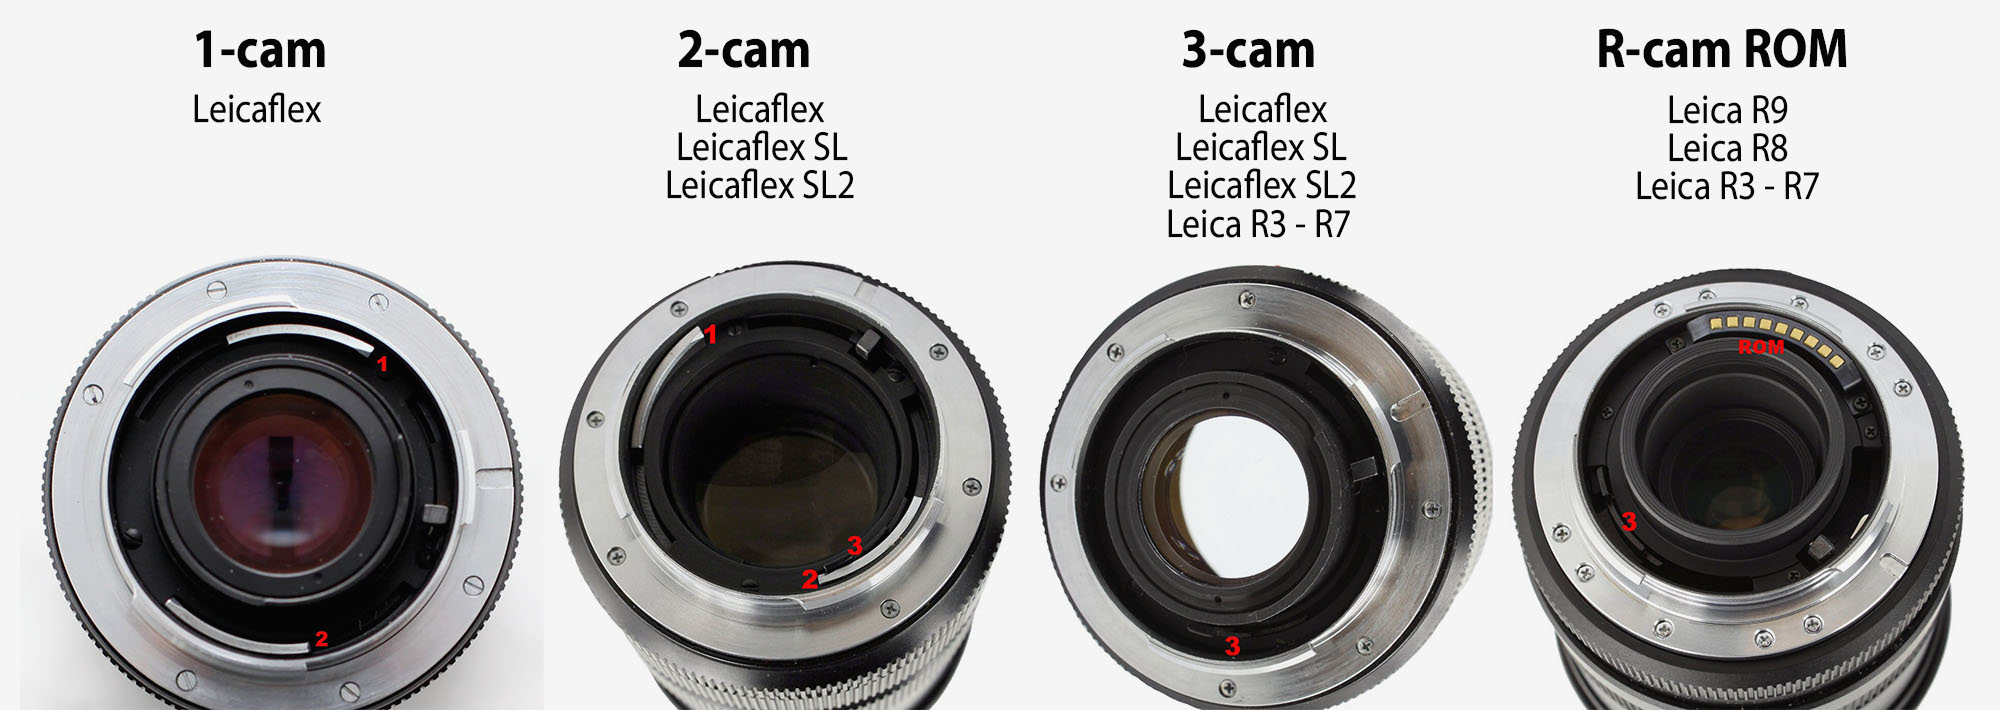 Cam = A Leica transmission system for the Leica R lenses, seen as metal parts inside the lens bayonet. (A cam is a rotating part in machinery, designed to